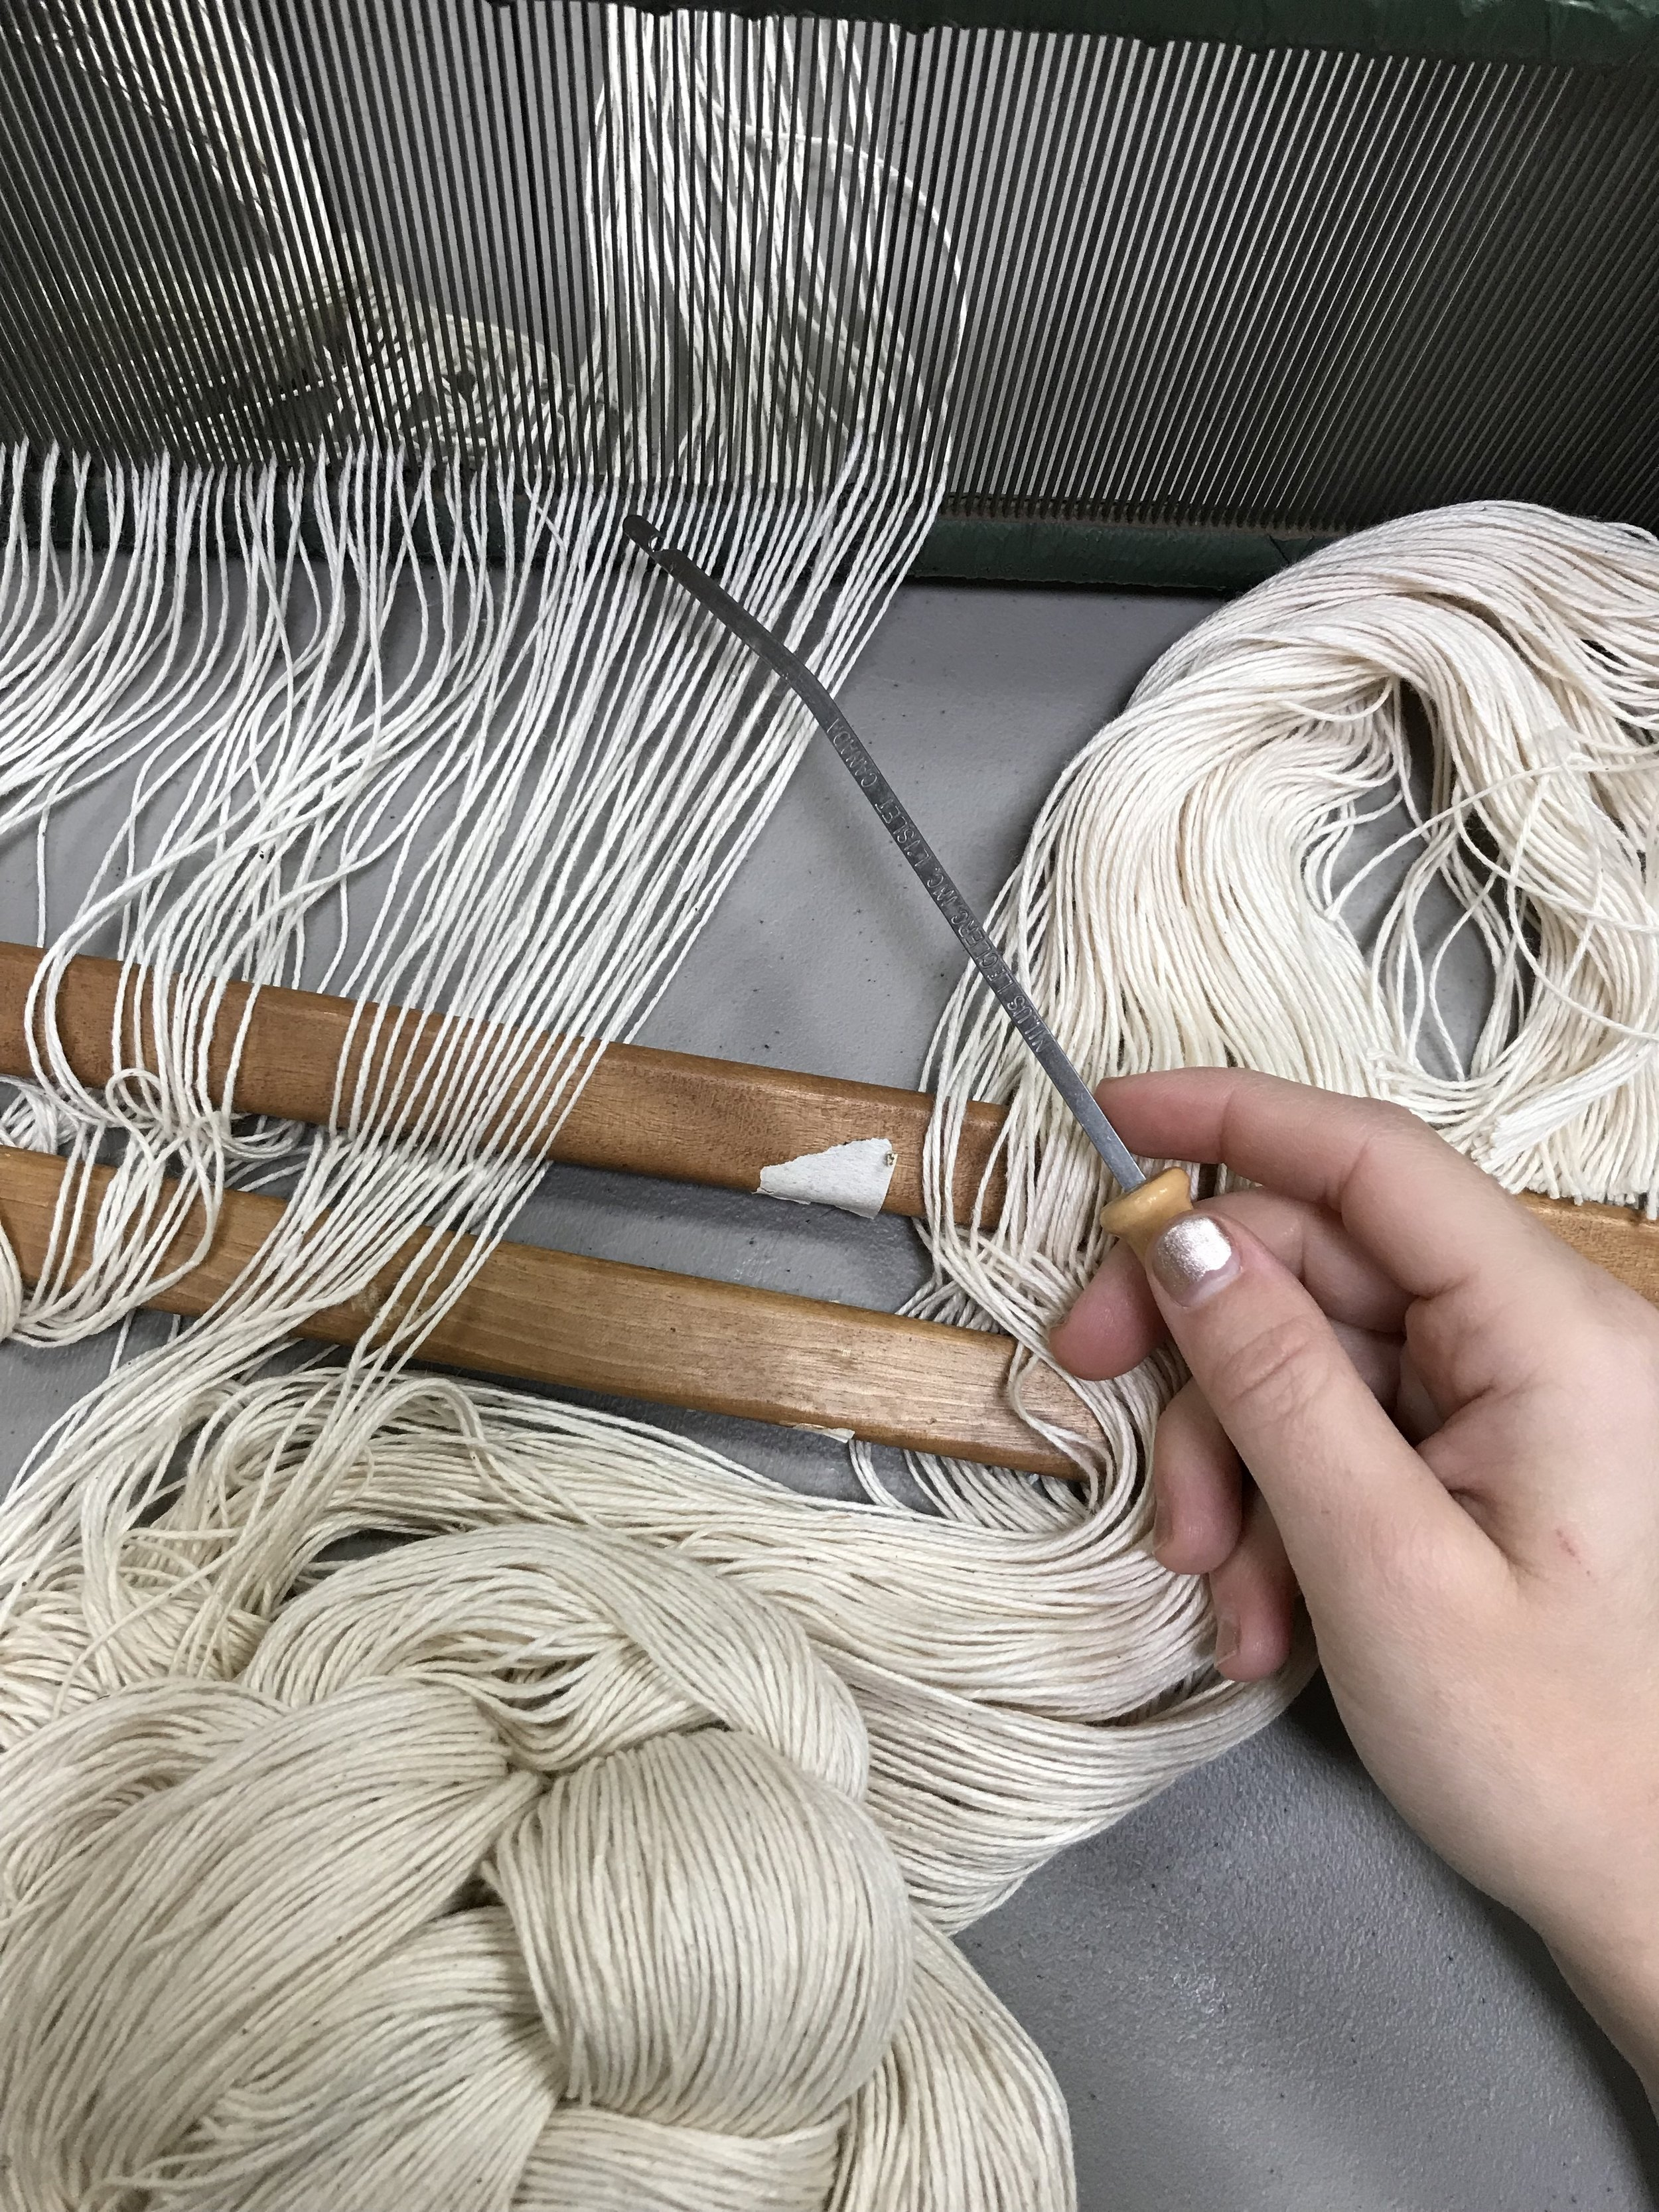 slowly pulling each thread through the reed